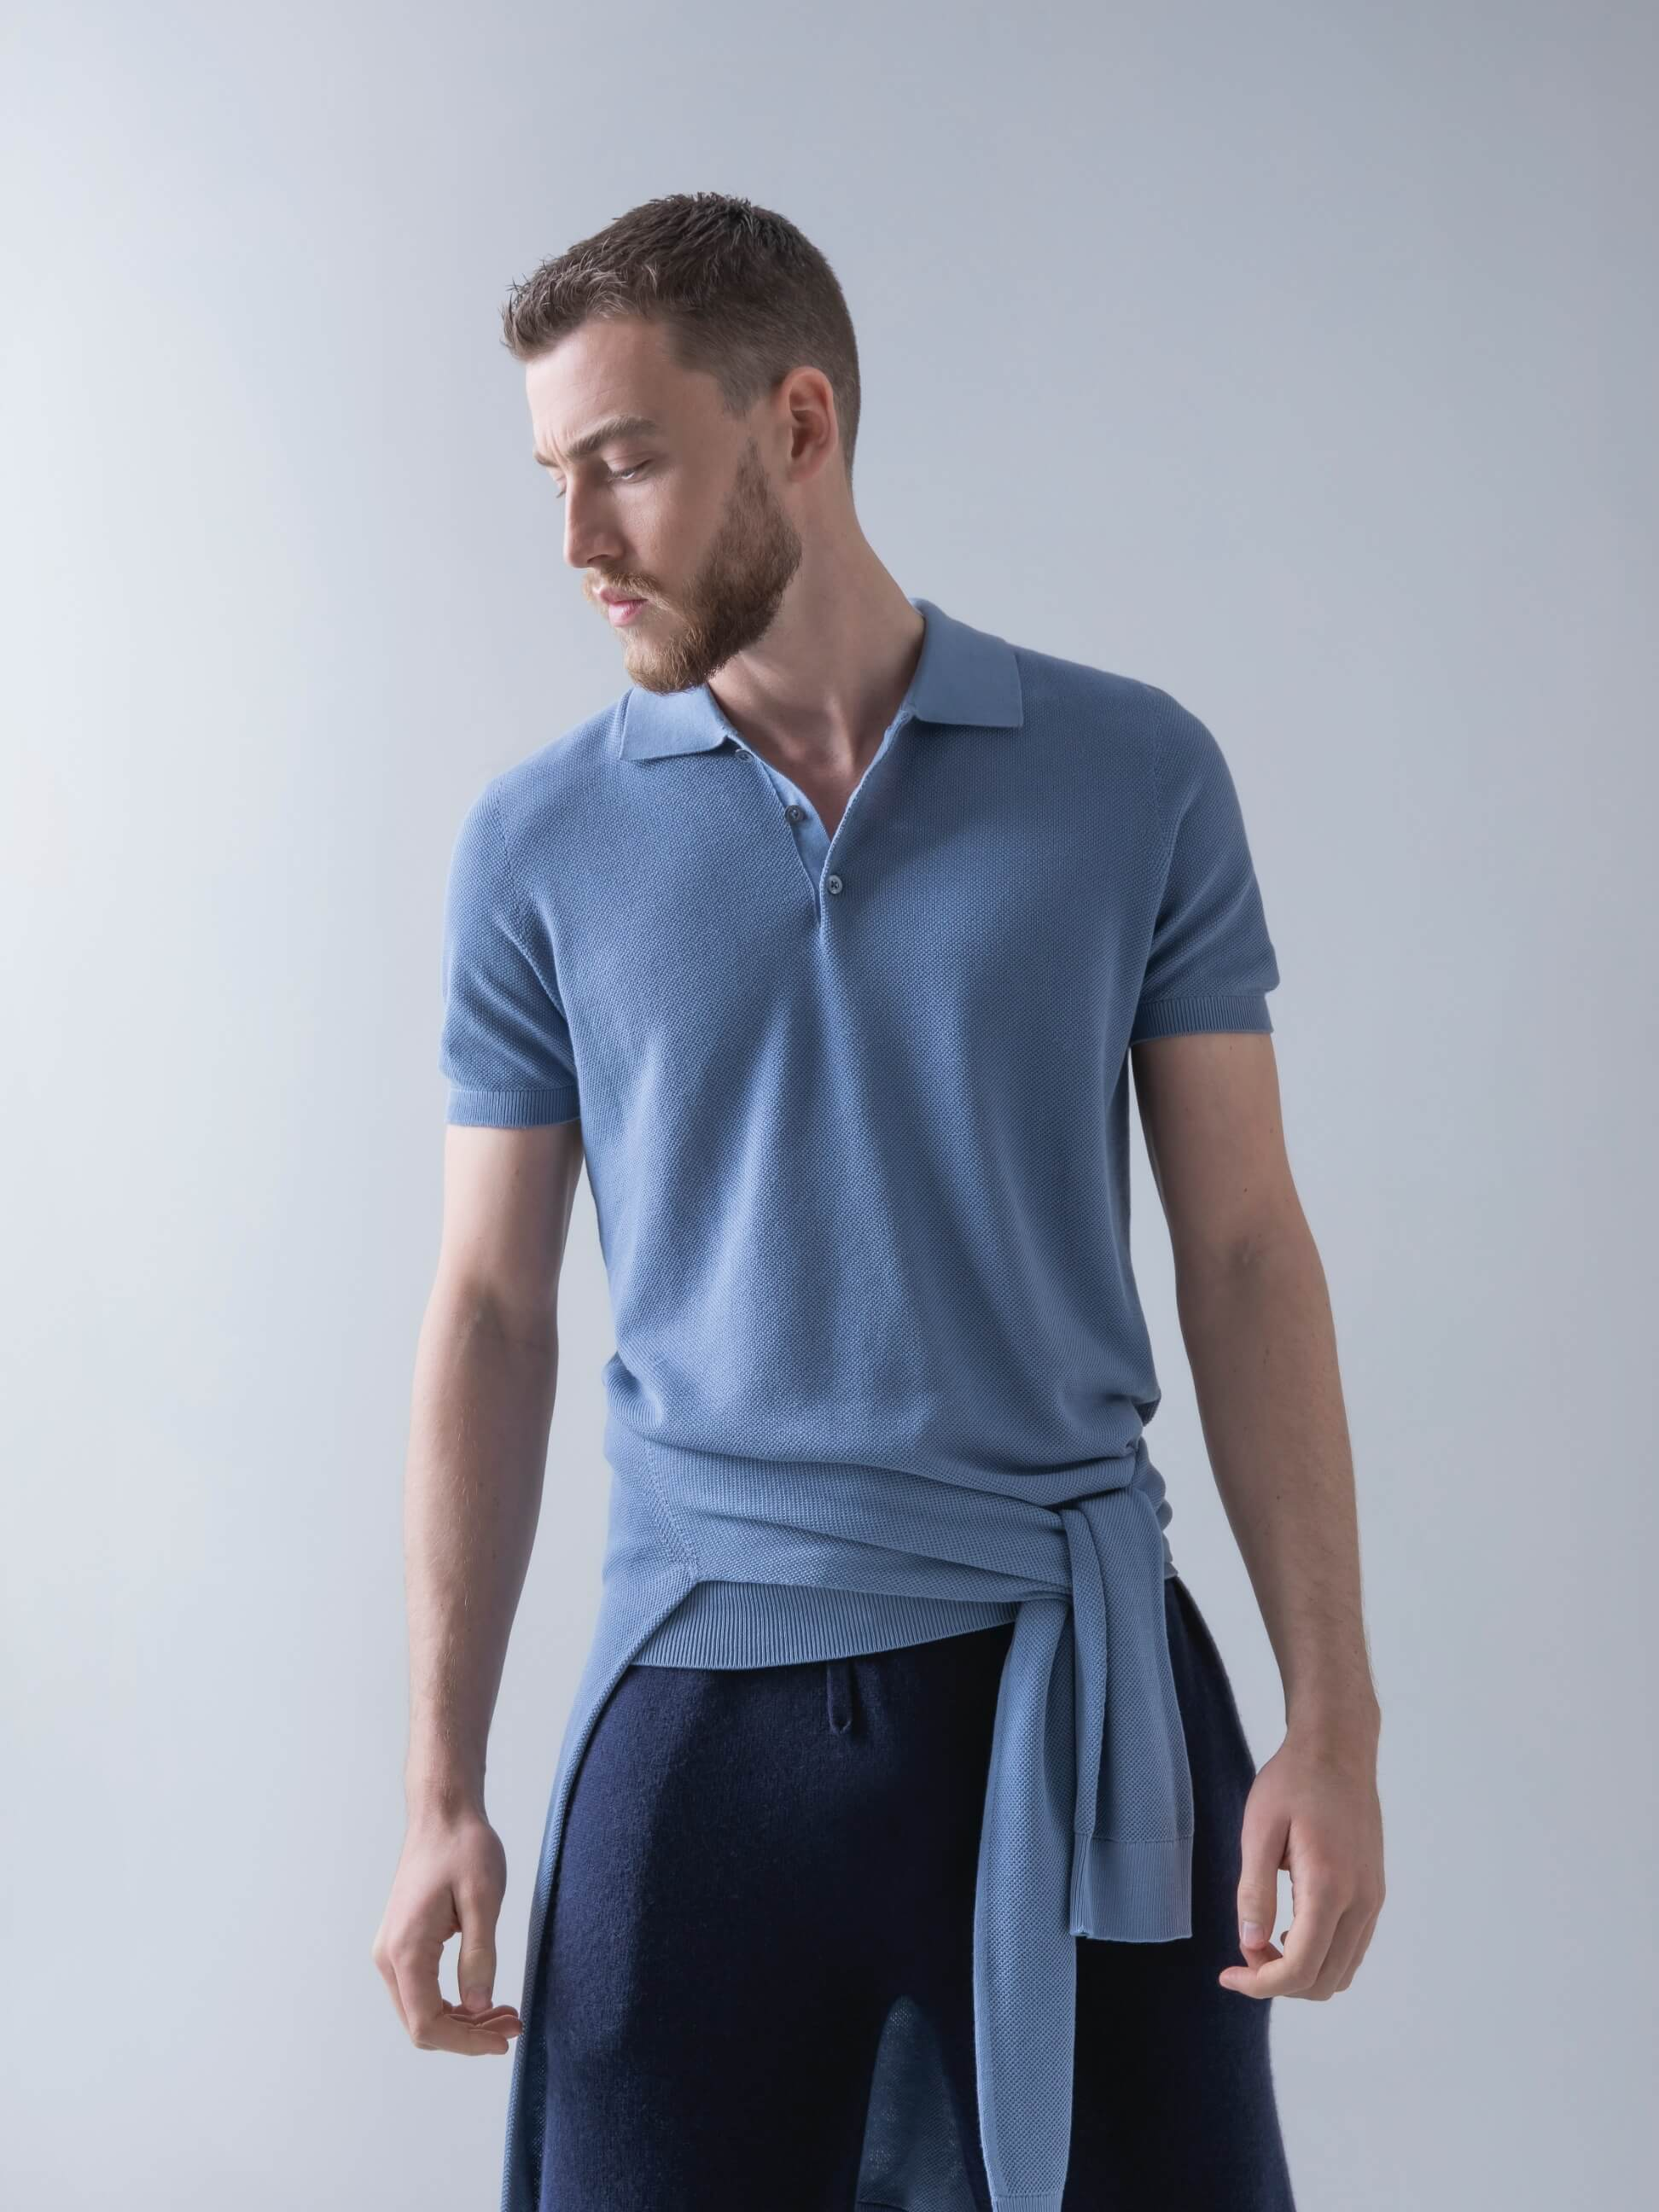 Crawford Superfine Cotton Polo Shirt in Wedgewood